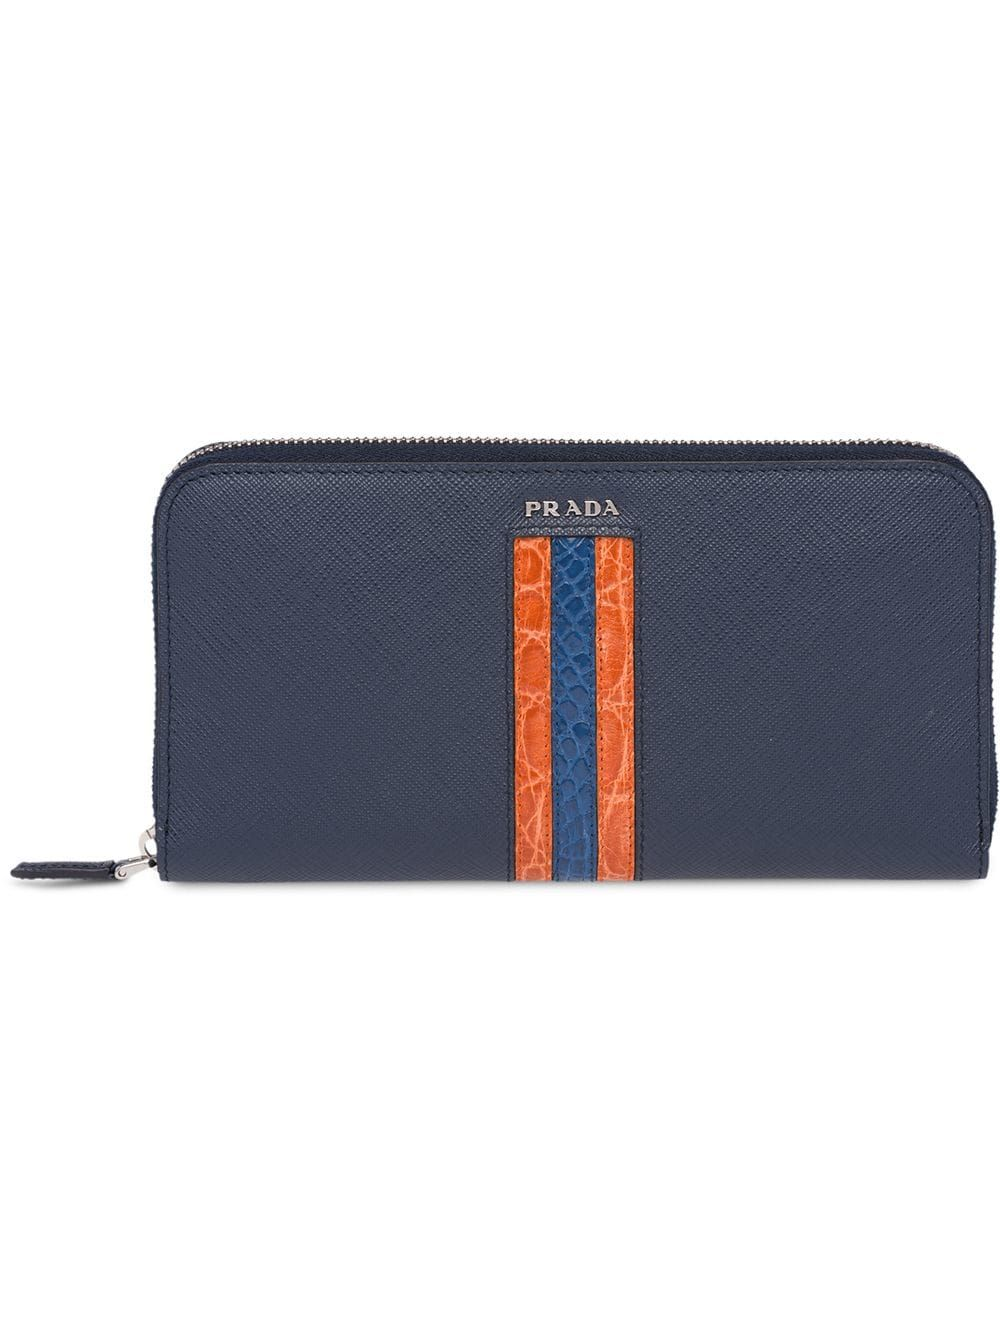 ff61ca710ea9 PRADA PRADA SAFFIANO AND CROCODILE LEATHER WALLET - BLUE. #prada ...